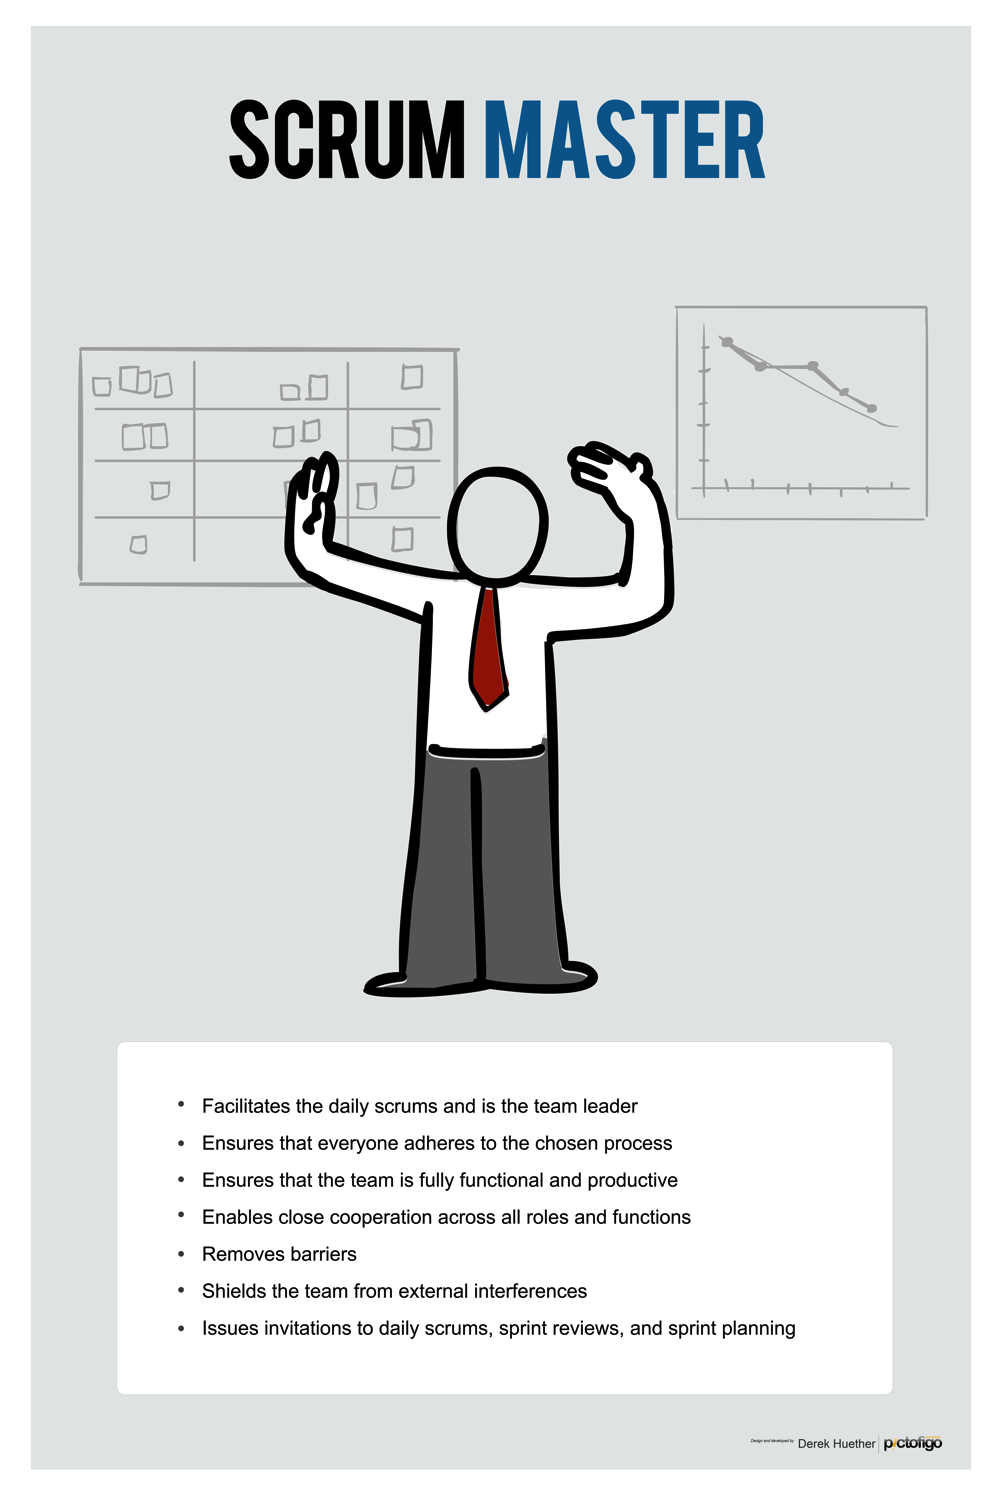 Male ScrumMaster - What are the attributes of a ScrumMaster? Perfect for dressing up any wall, or instantly creating a theme for a room. Images look great on this high-quality poster.Available in 11